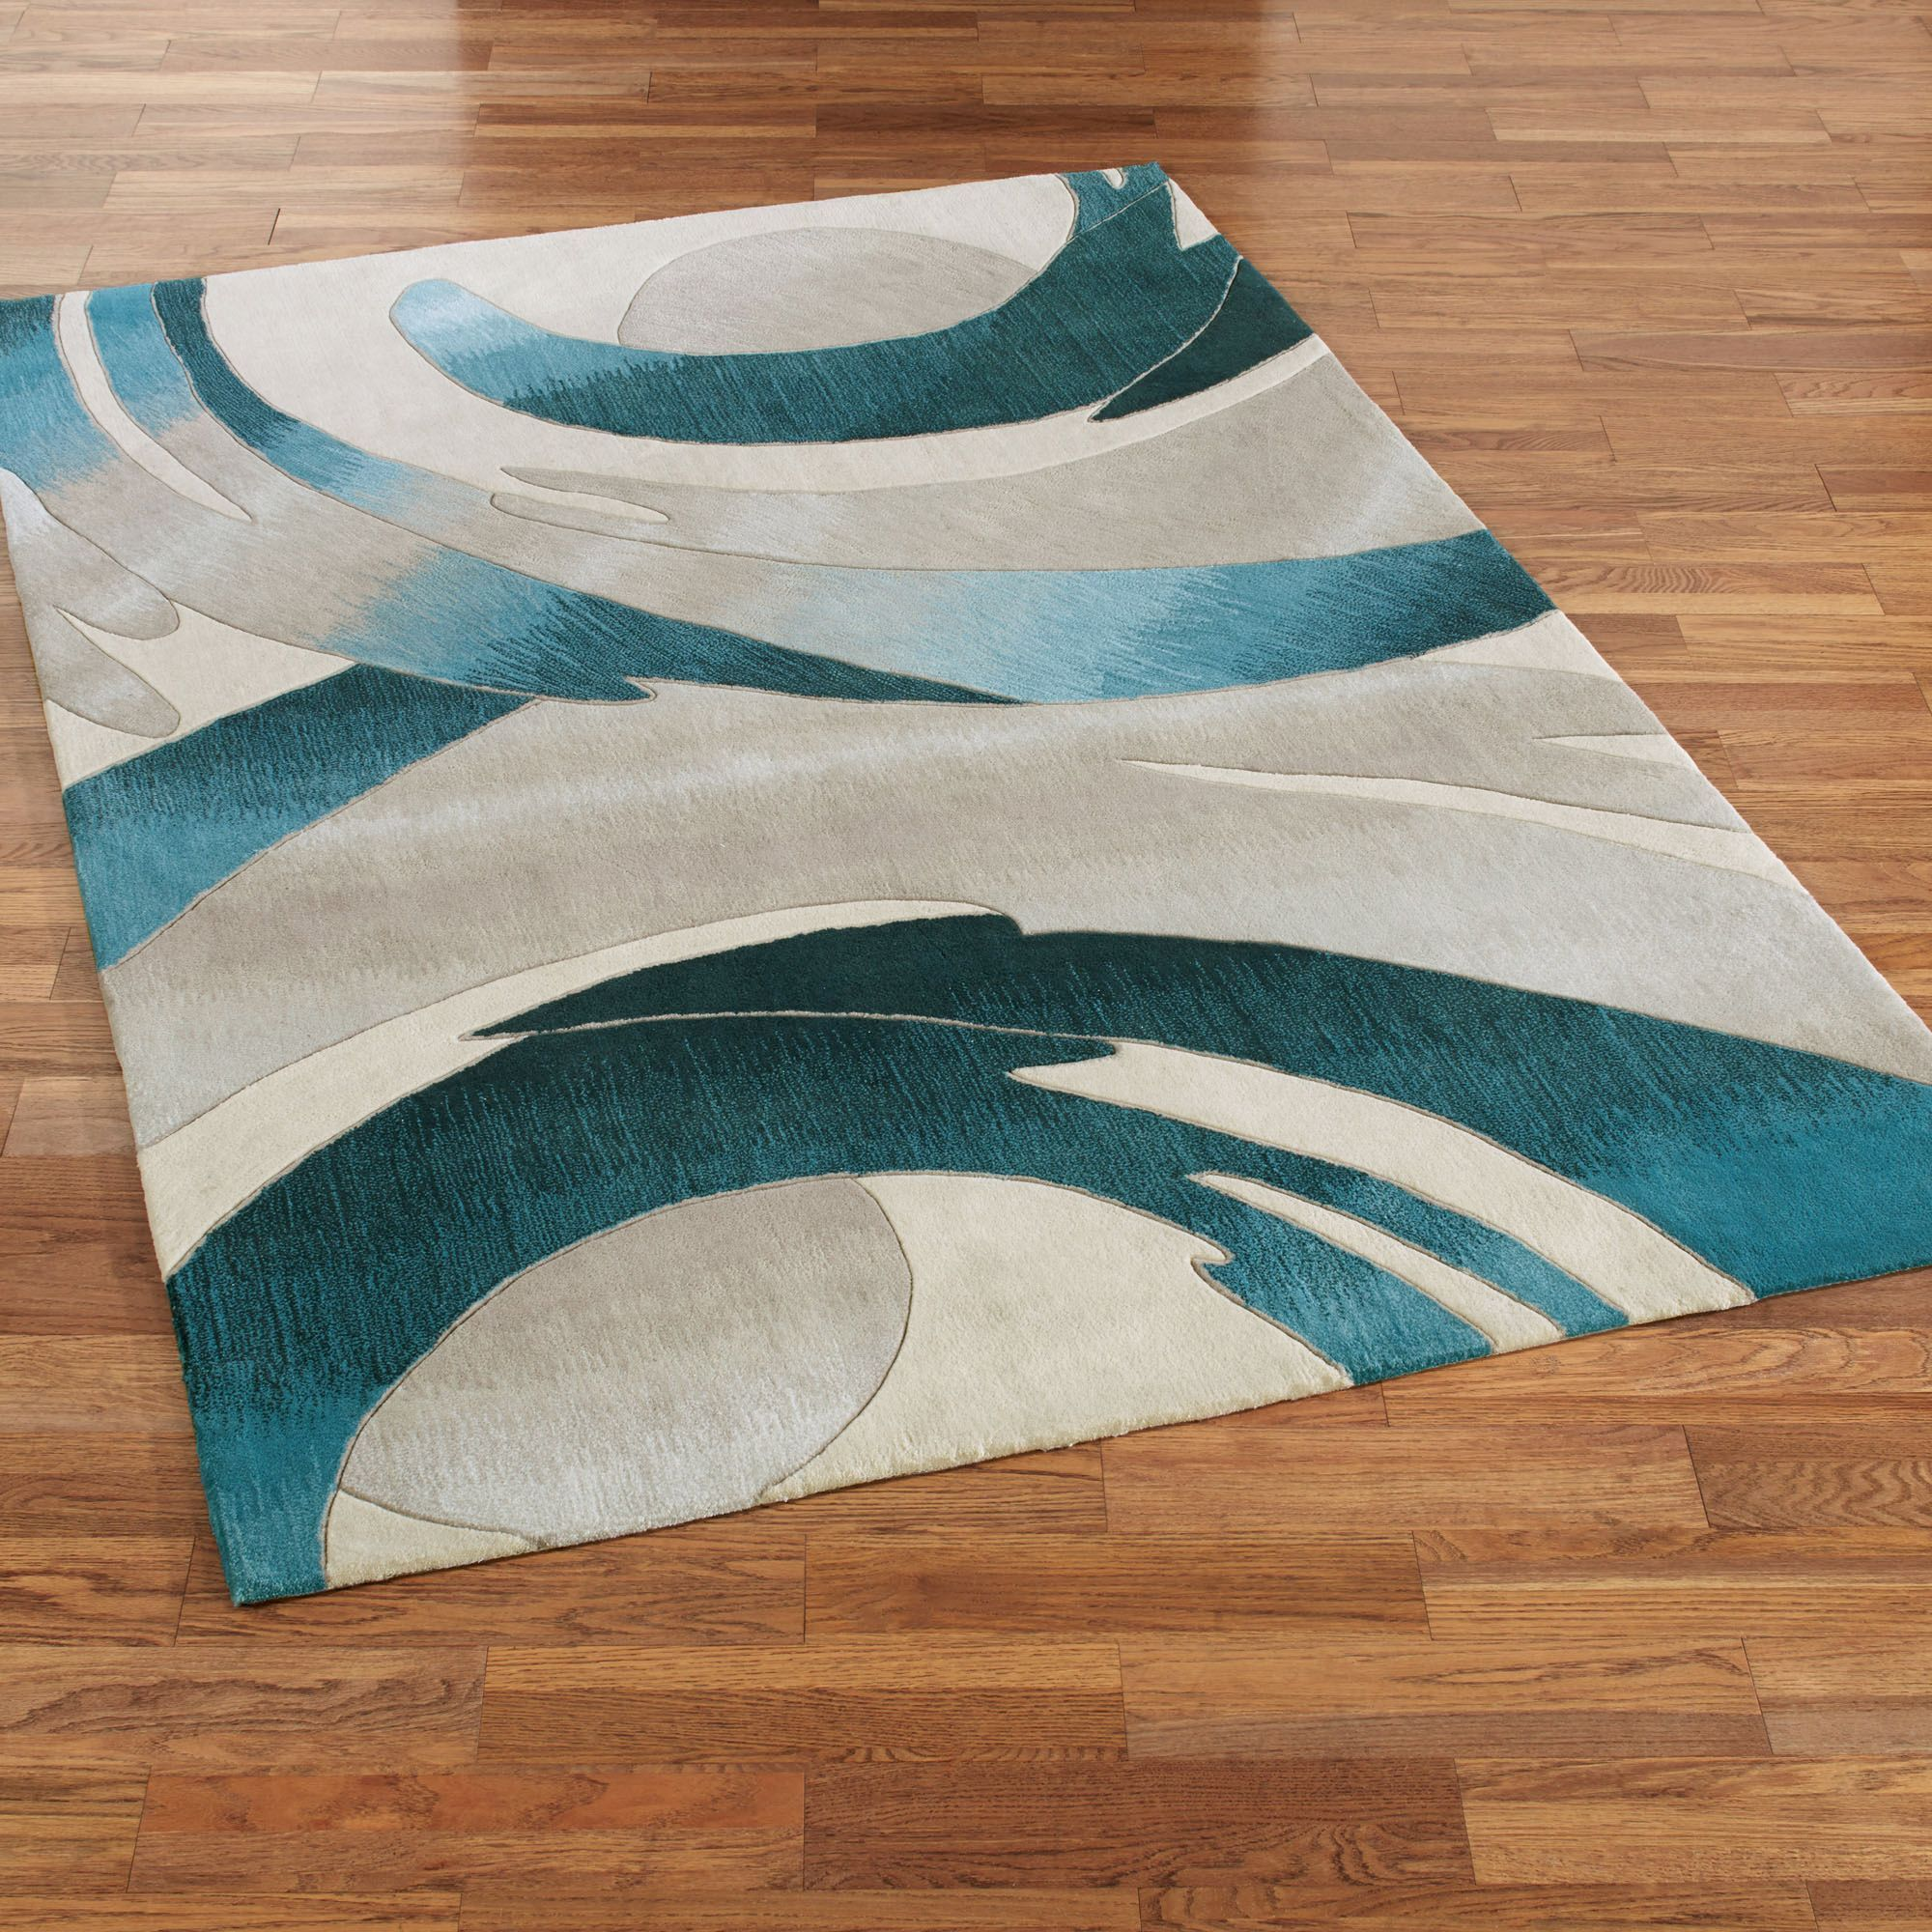 ^ 1000+ images about rea ugs on Pinterest ound rugs, Wool area ...